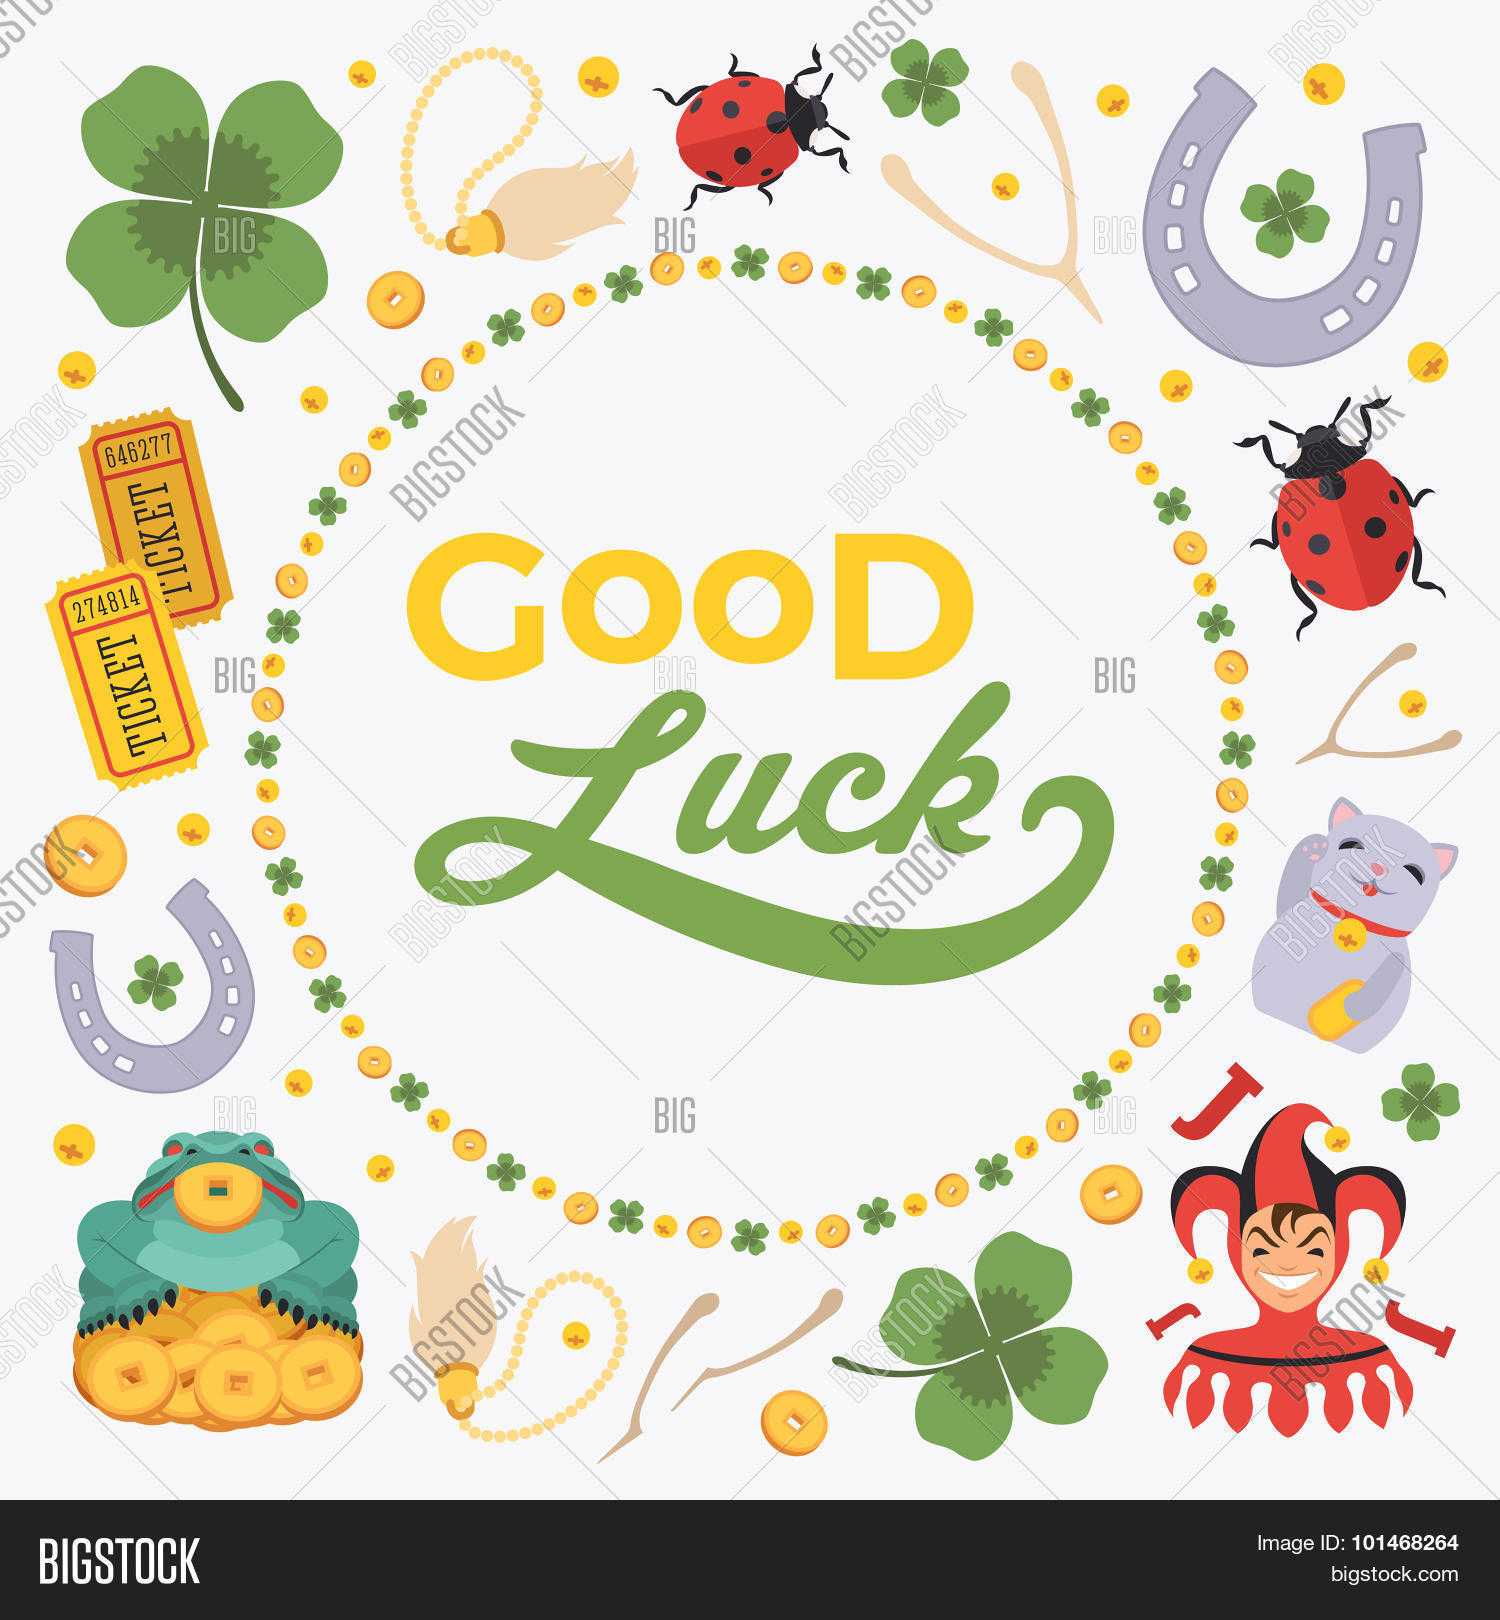 Vector Decorating Vector & Photo (Free Trial) | Bigstock With Good Luck Card Templates